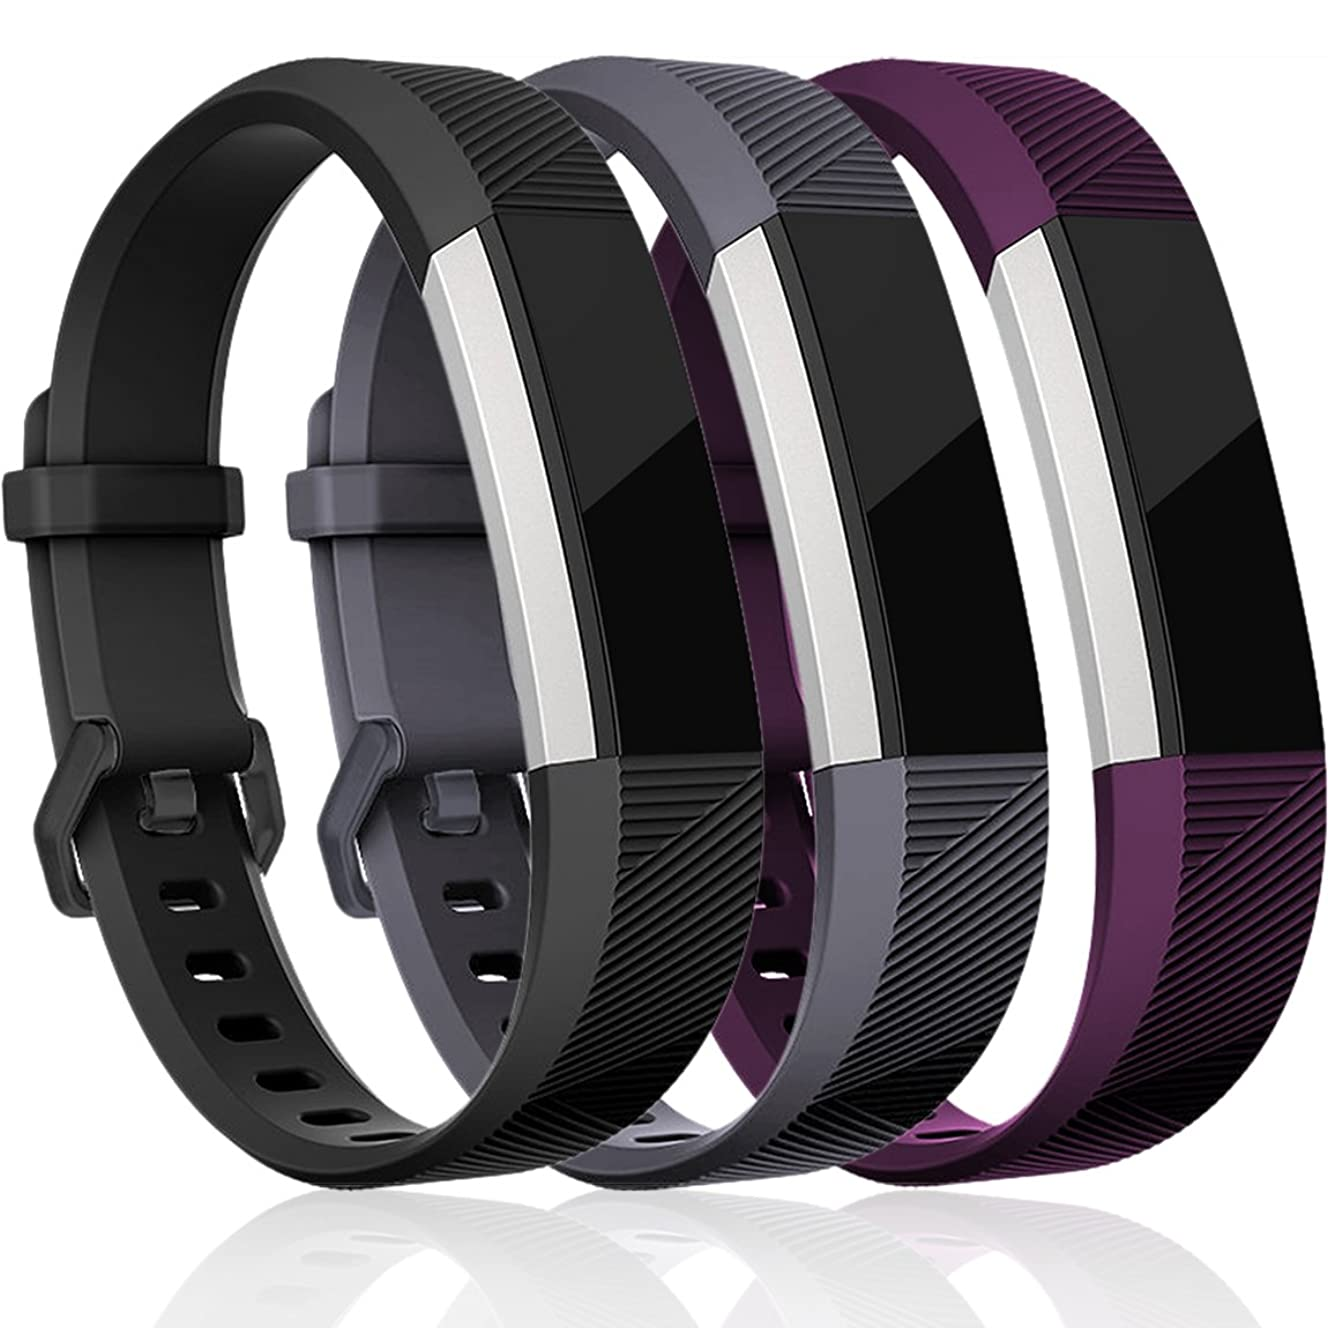 Maledan Replacement Bands Compatible for Fitbit Alta, Alta HR and Fitbit Ace, Classic Accessories Band Sport Strap for Fitbit Alta HR, Fitbit Alta and Fitbit Ace, 3-Pack, Women Men